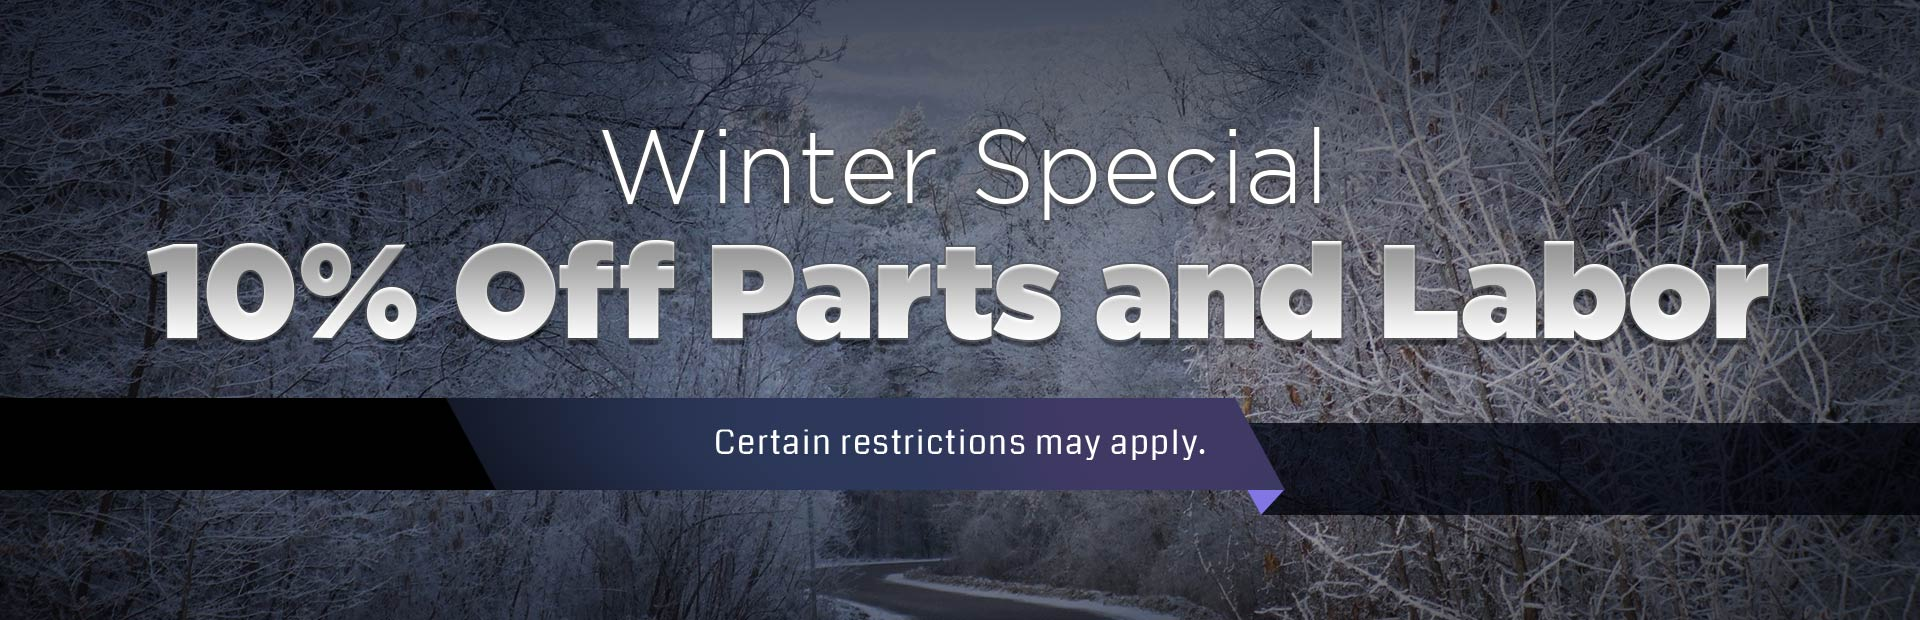 Central Washington Equipment Wenatchee Wa 800 235 1733 Carburetor Diagram Parts List For Model H6075506n Tecumsehparts All Winter Special Get 10 Off And Labor Certain Restrictions May Apply